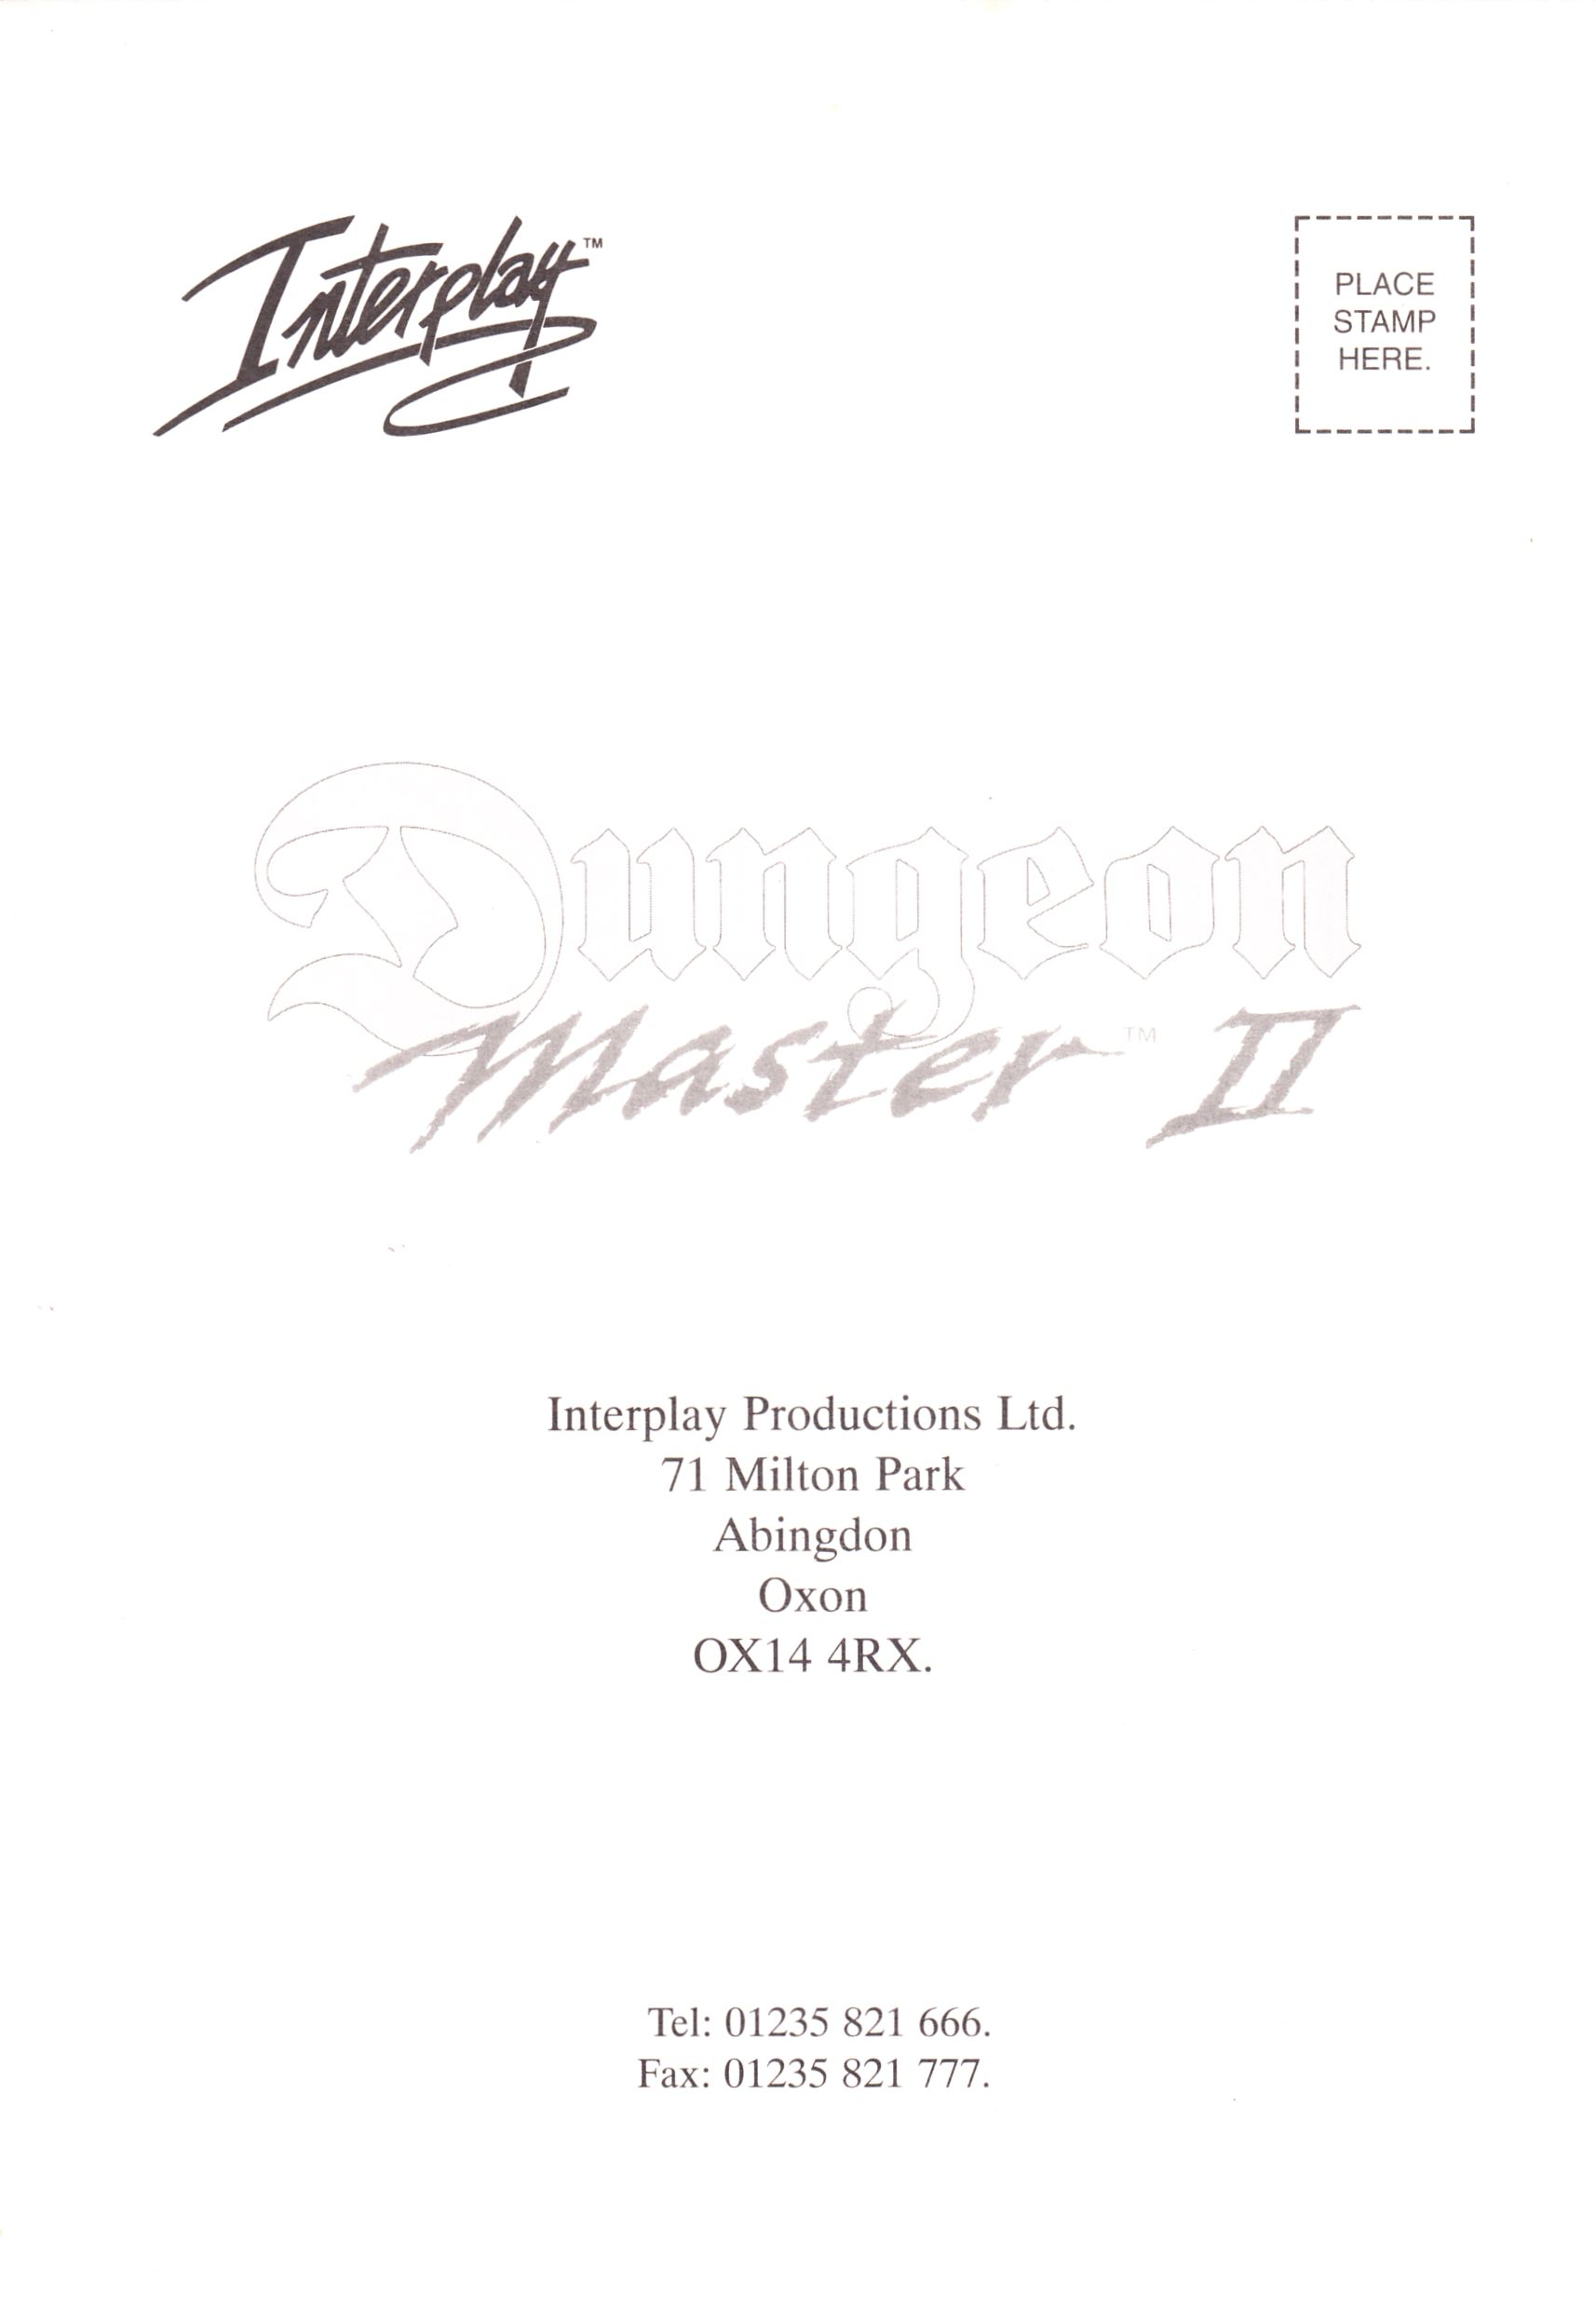 Game - Dungeon Master II - UK - PC - CD Version - Registration Card - Front - Scan